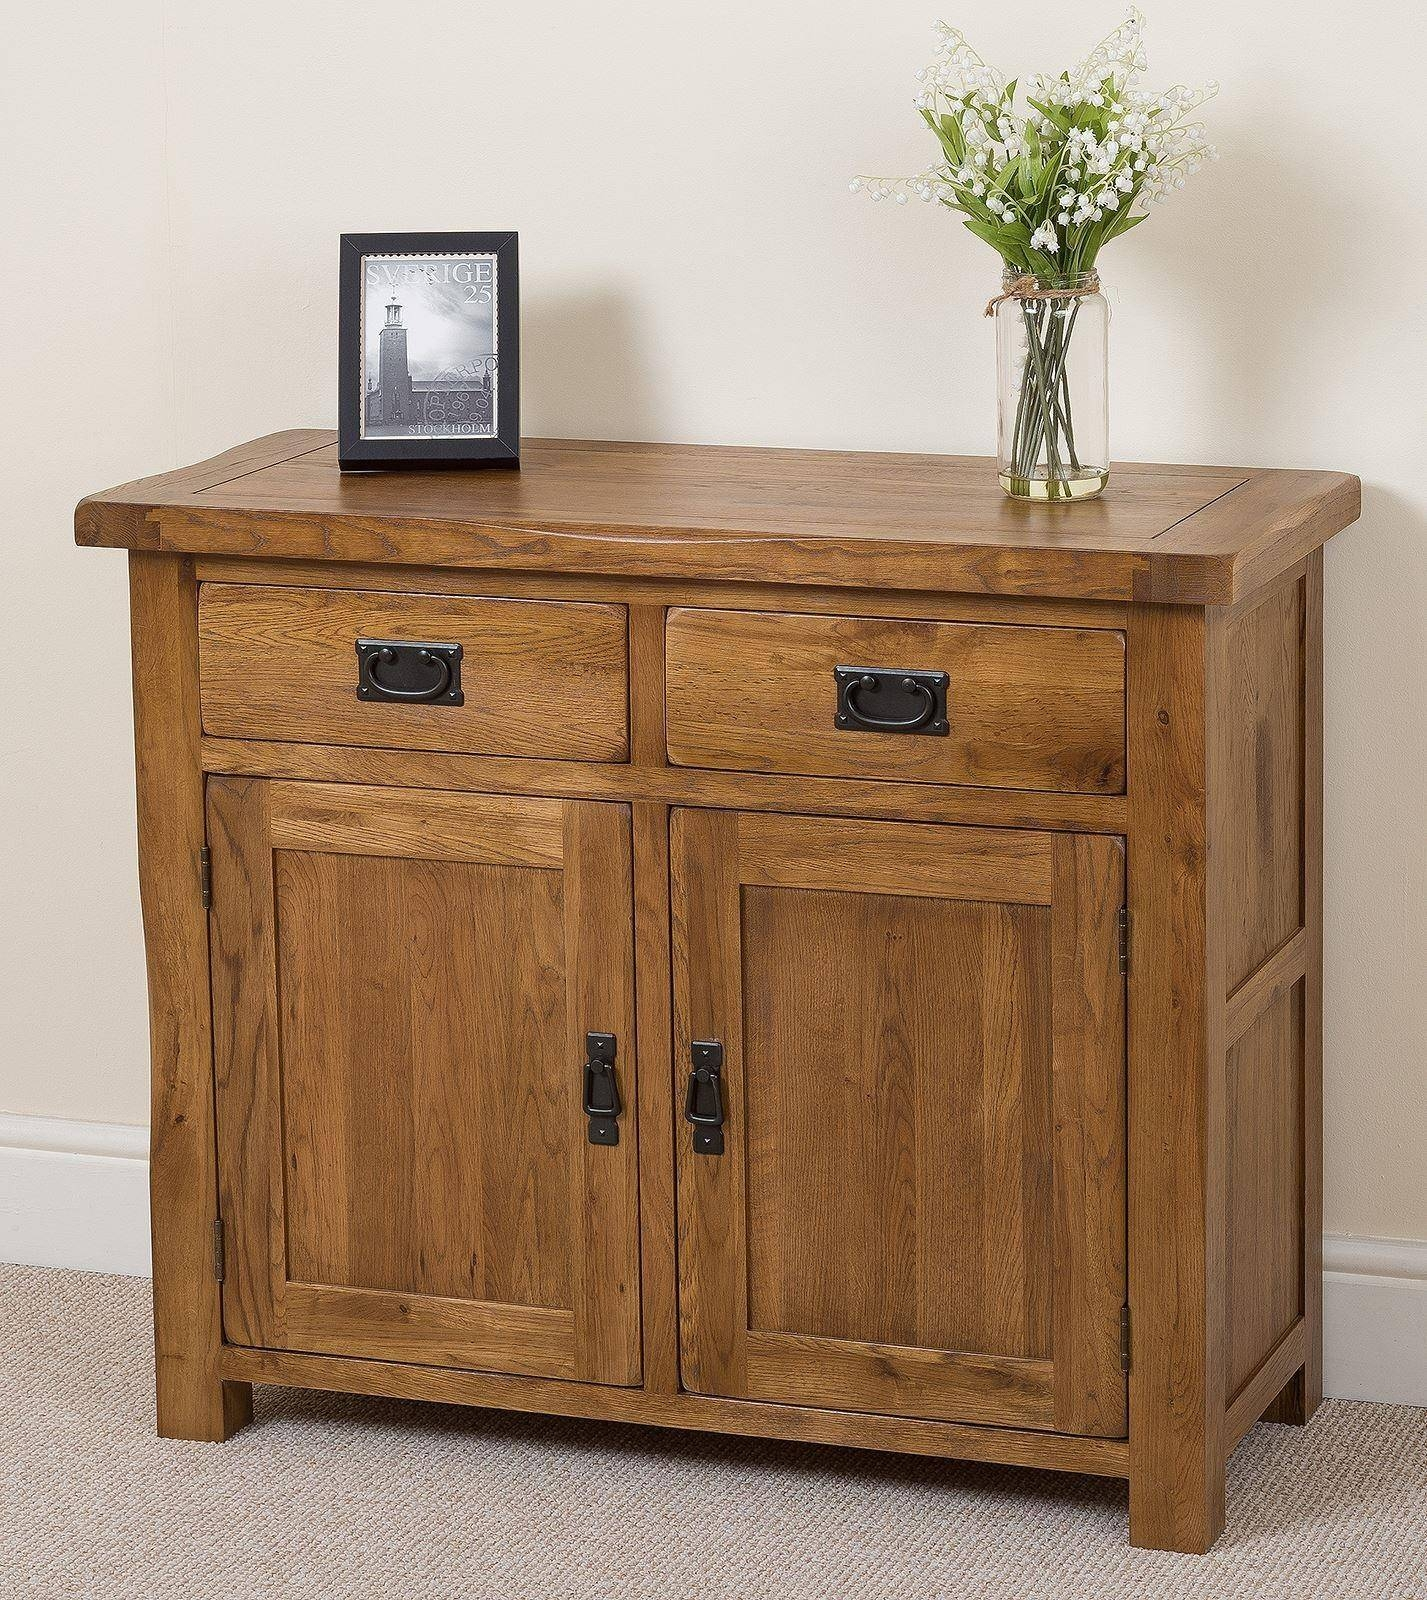 Cotswold Rustic Small Oak Sideboard | Free Uk Delivery Intended For Solid Oak Sideboards (View 4 of 15)